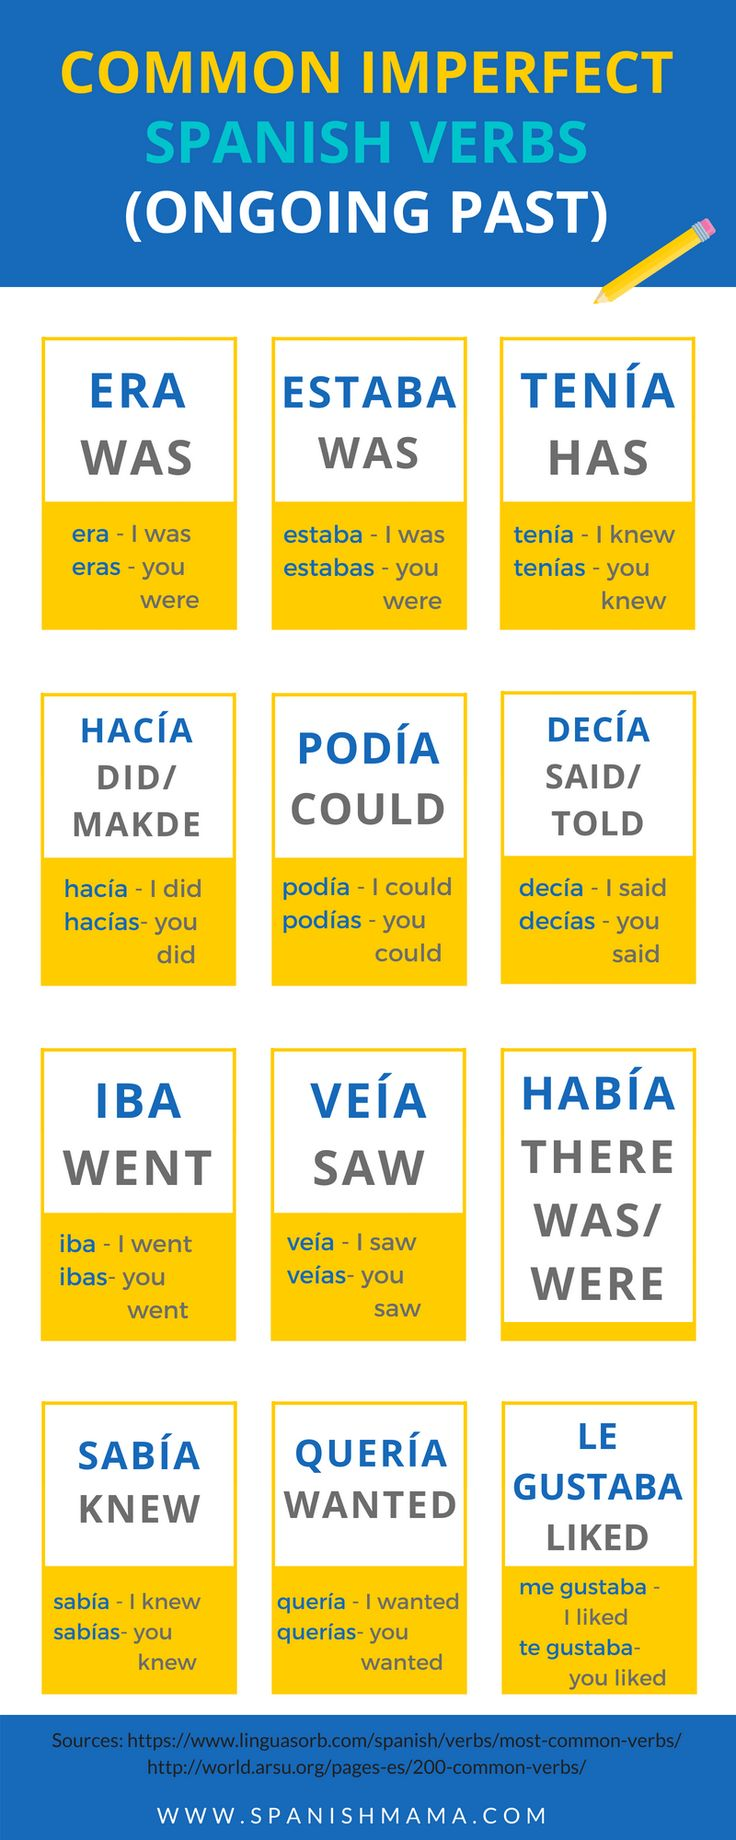 Highfrequency verbs in the Spanish imperfect these are